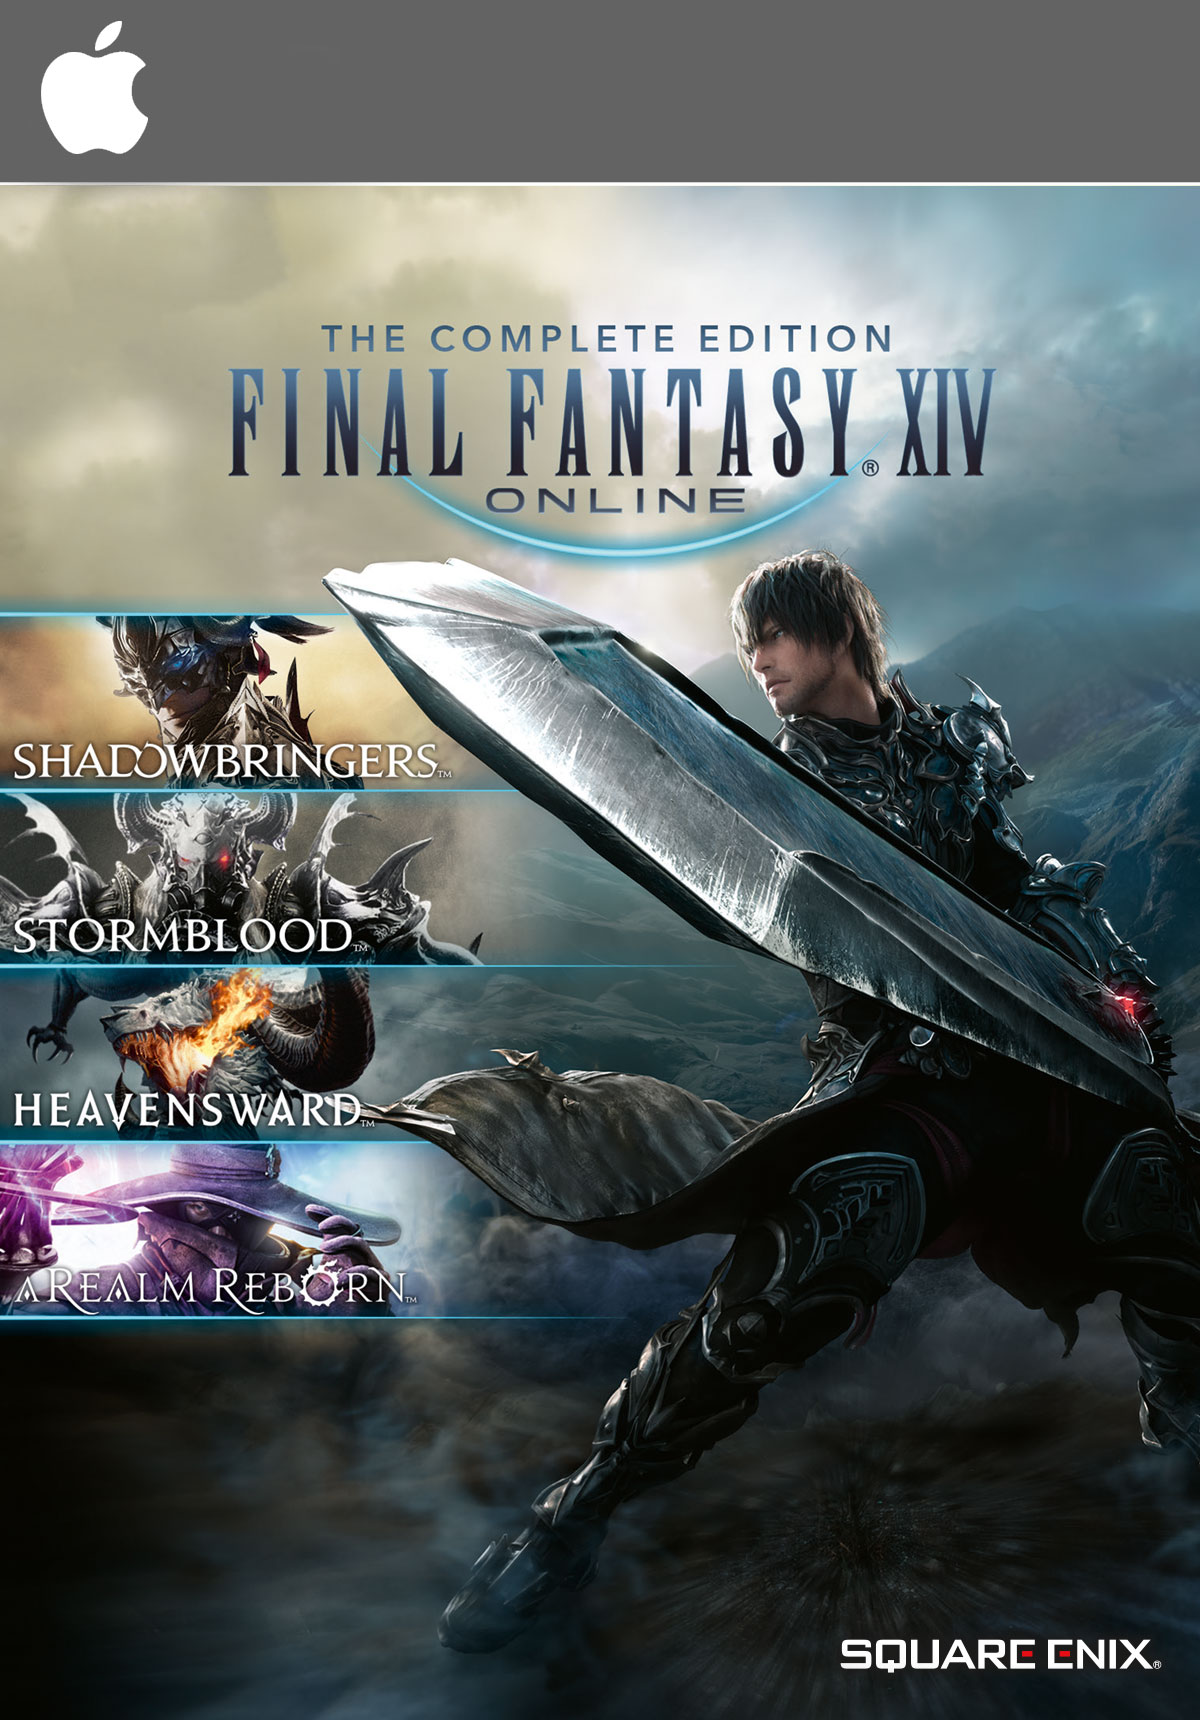 final fantasy xiv online complete edition mac os